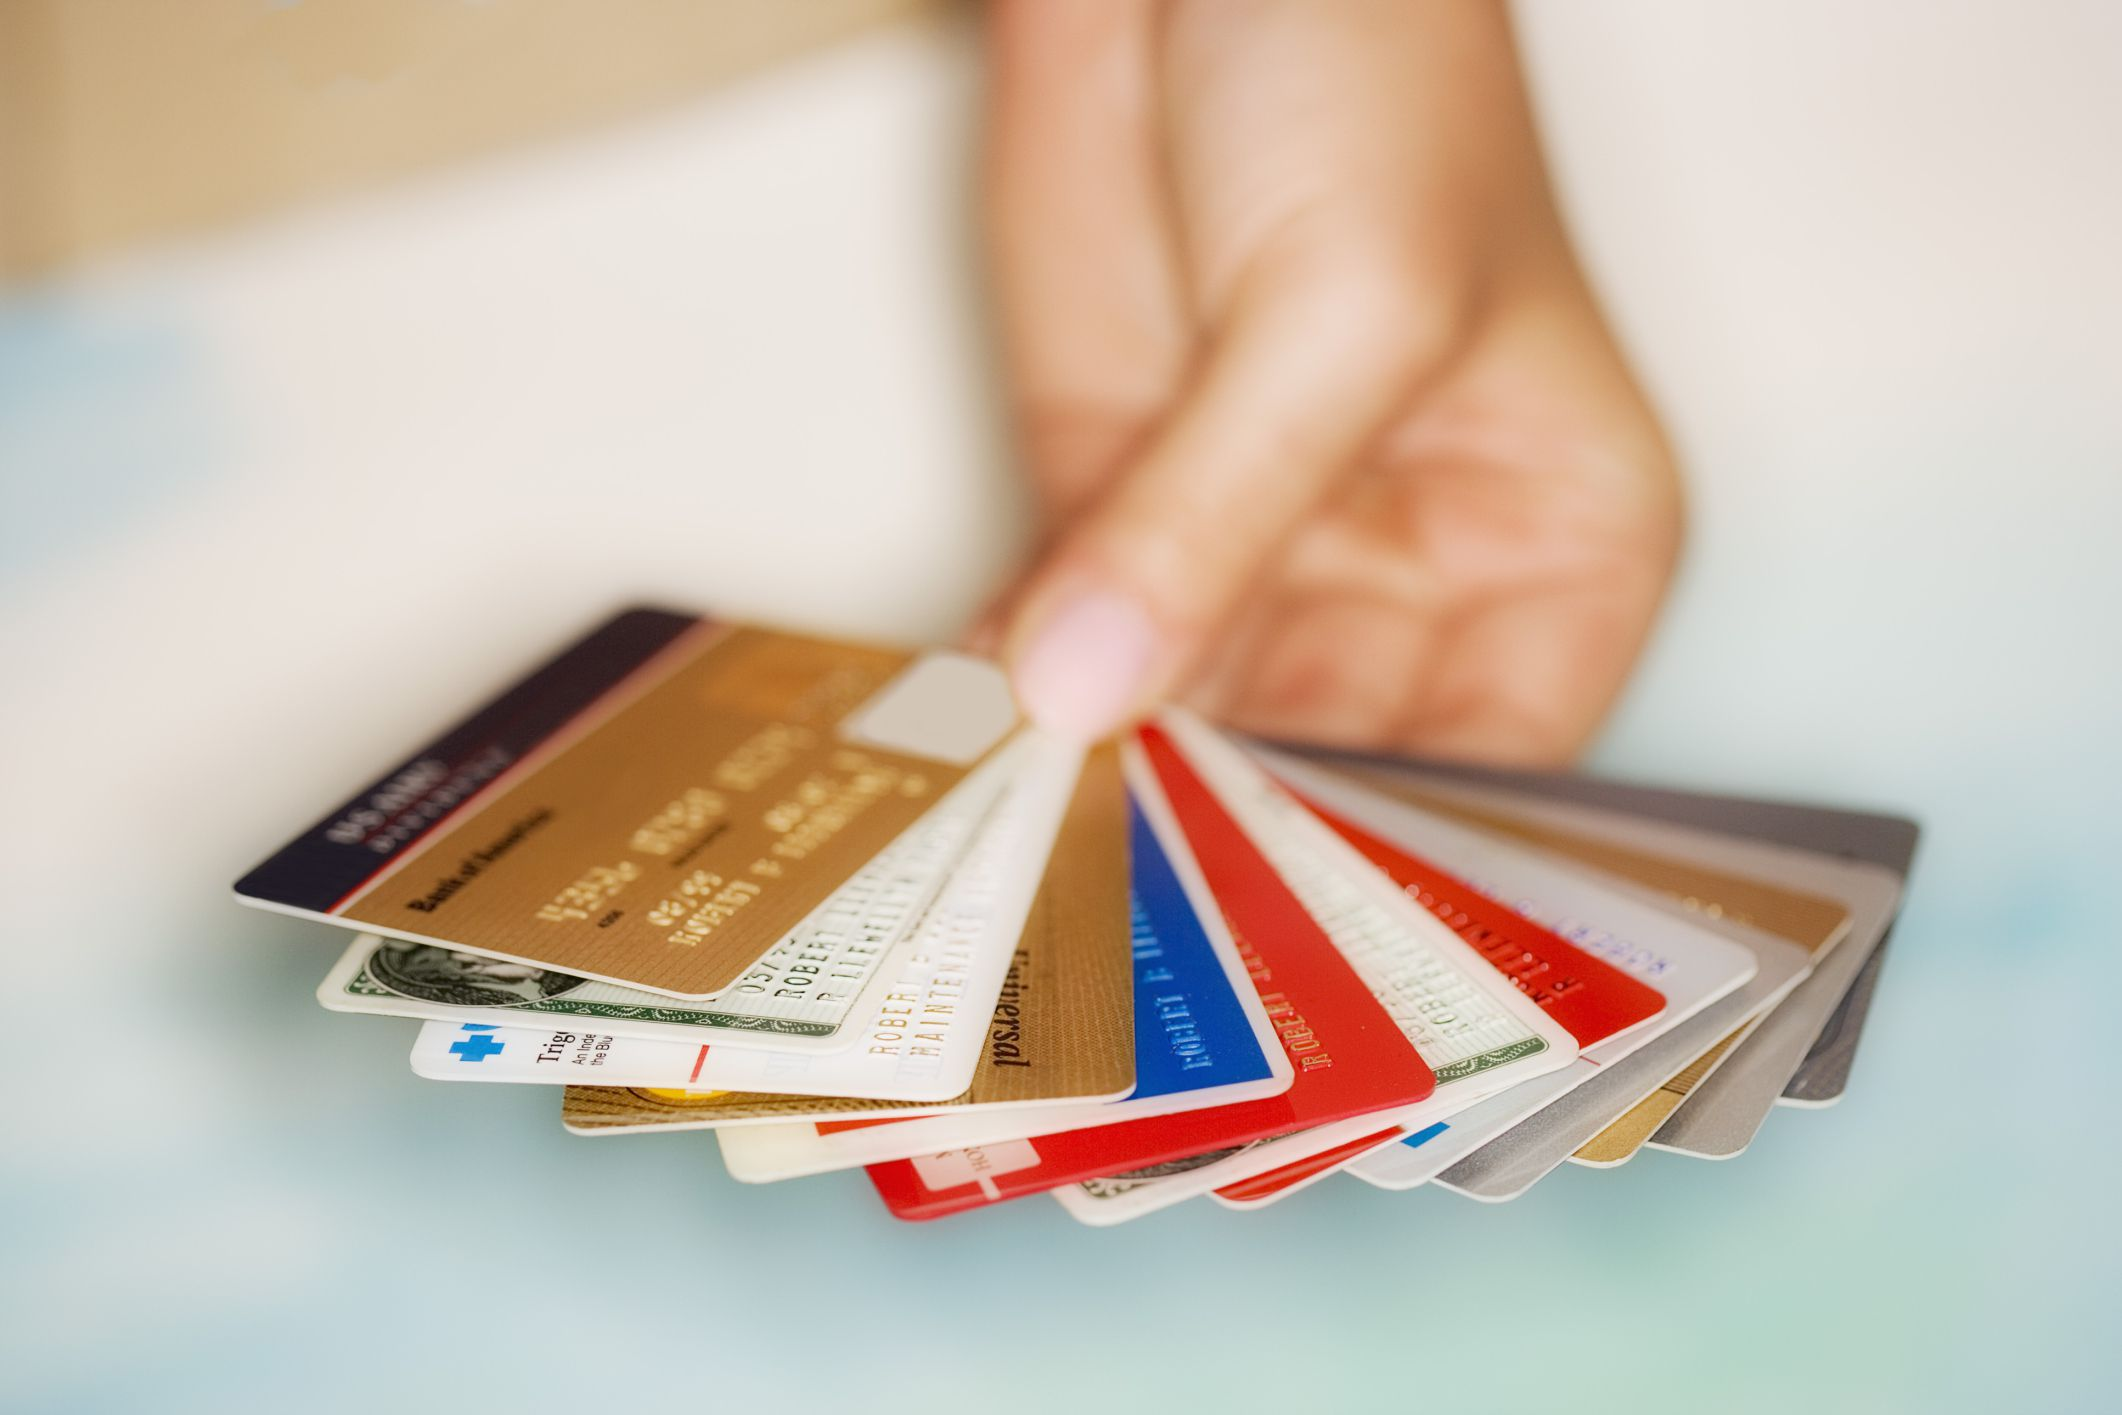 8 Factors to Help You Choose the Best Balance Transfer Credit Card